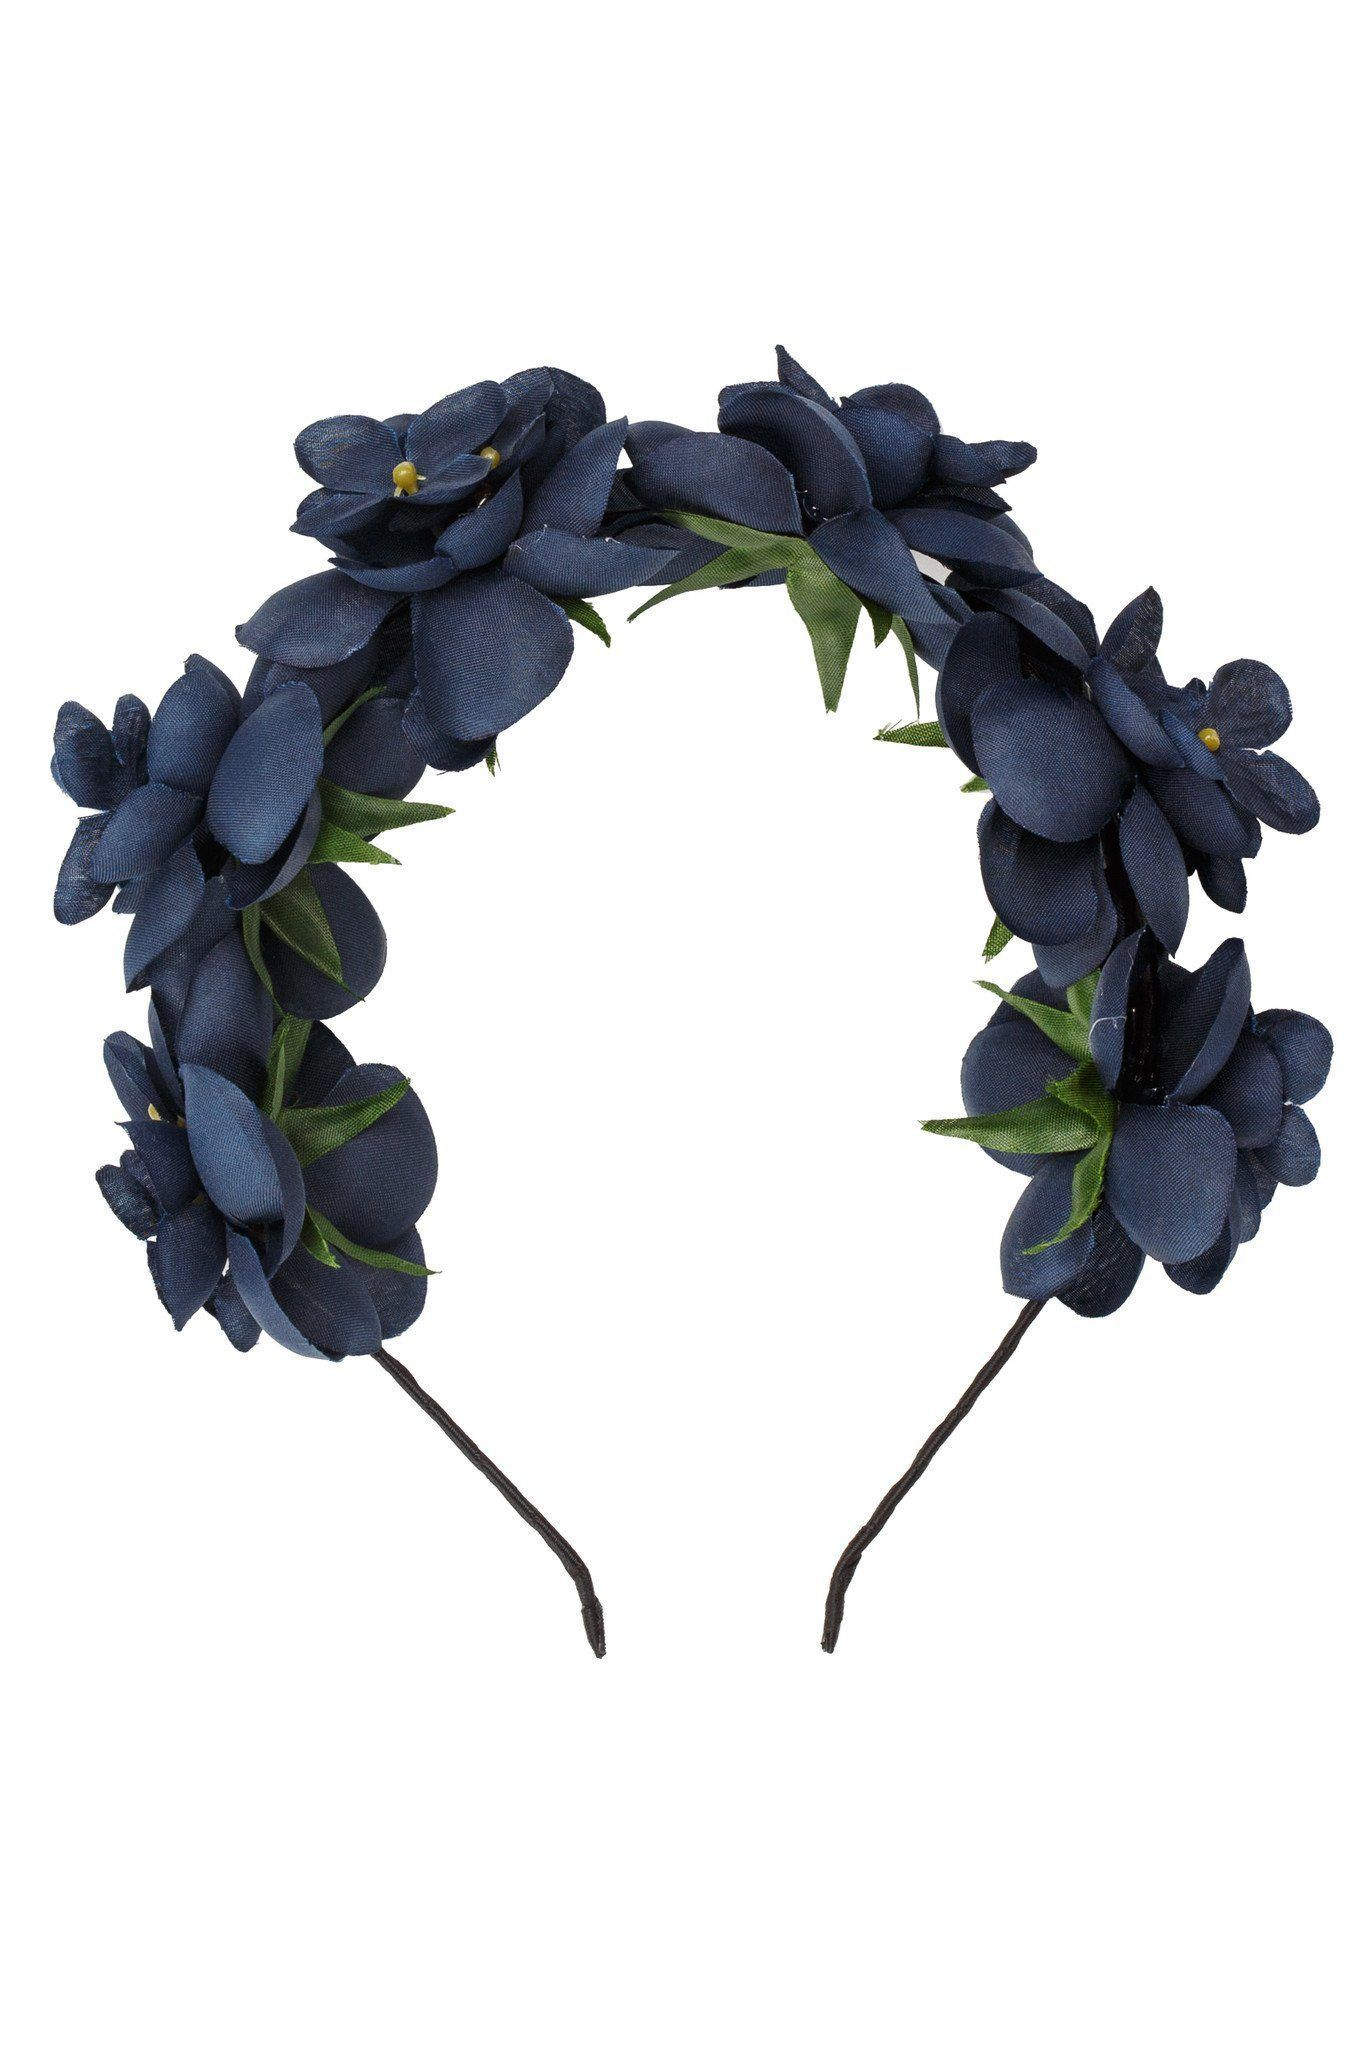 Floral crown collection project 6 floral crown navy project 6 modest fashion izmirmasajfo Gallery